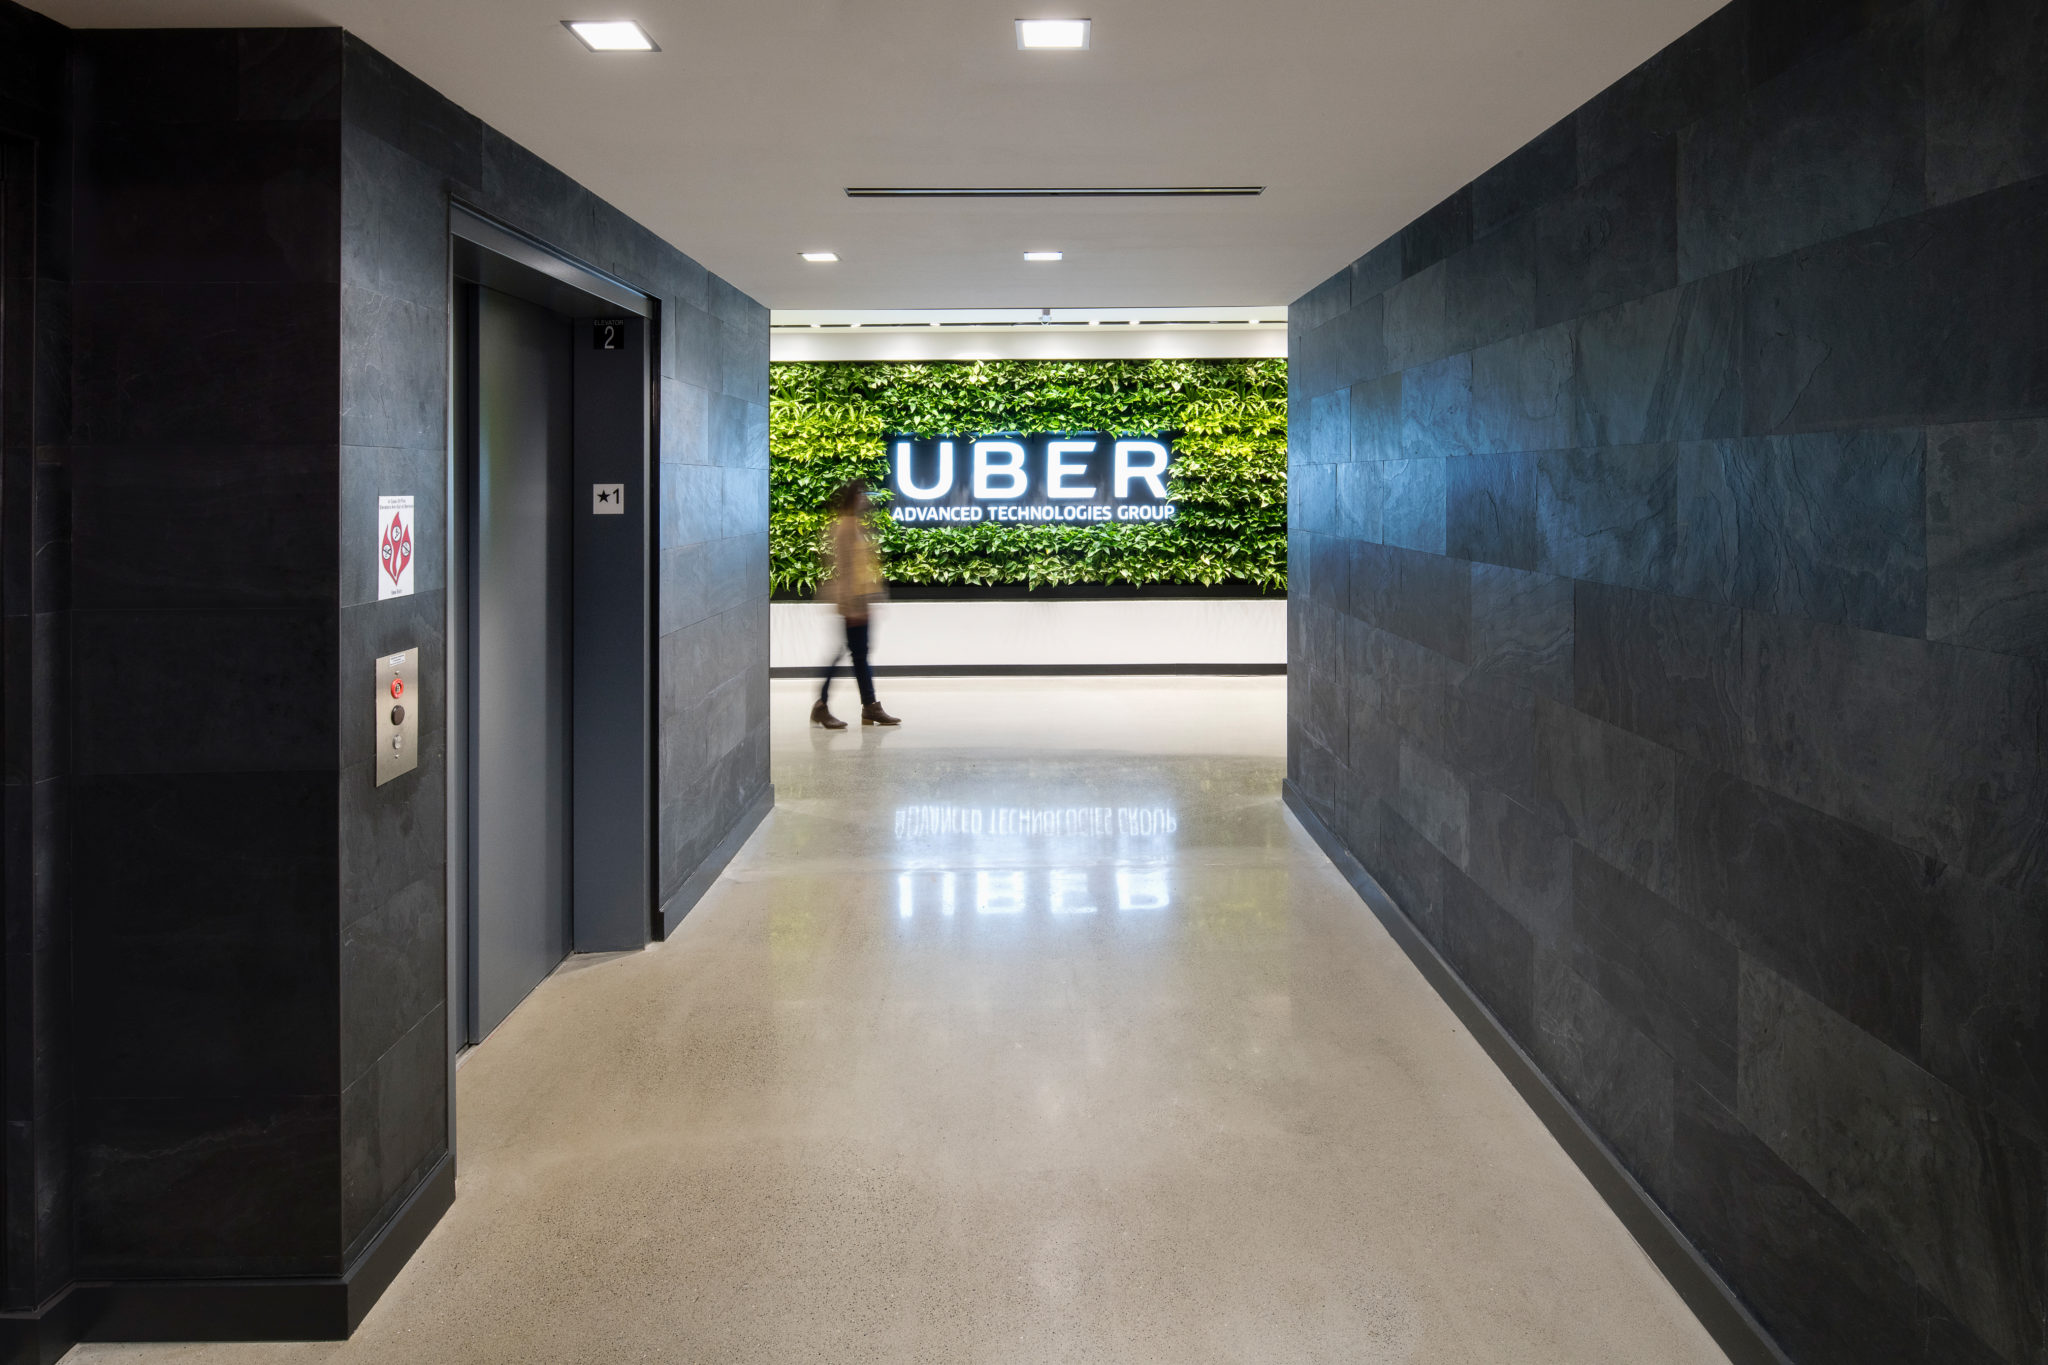 UBER Advanced Technology Group